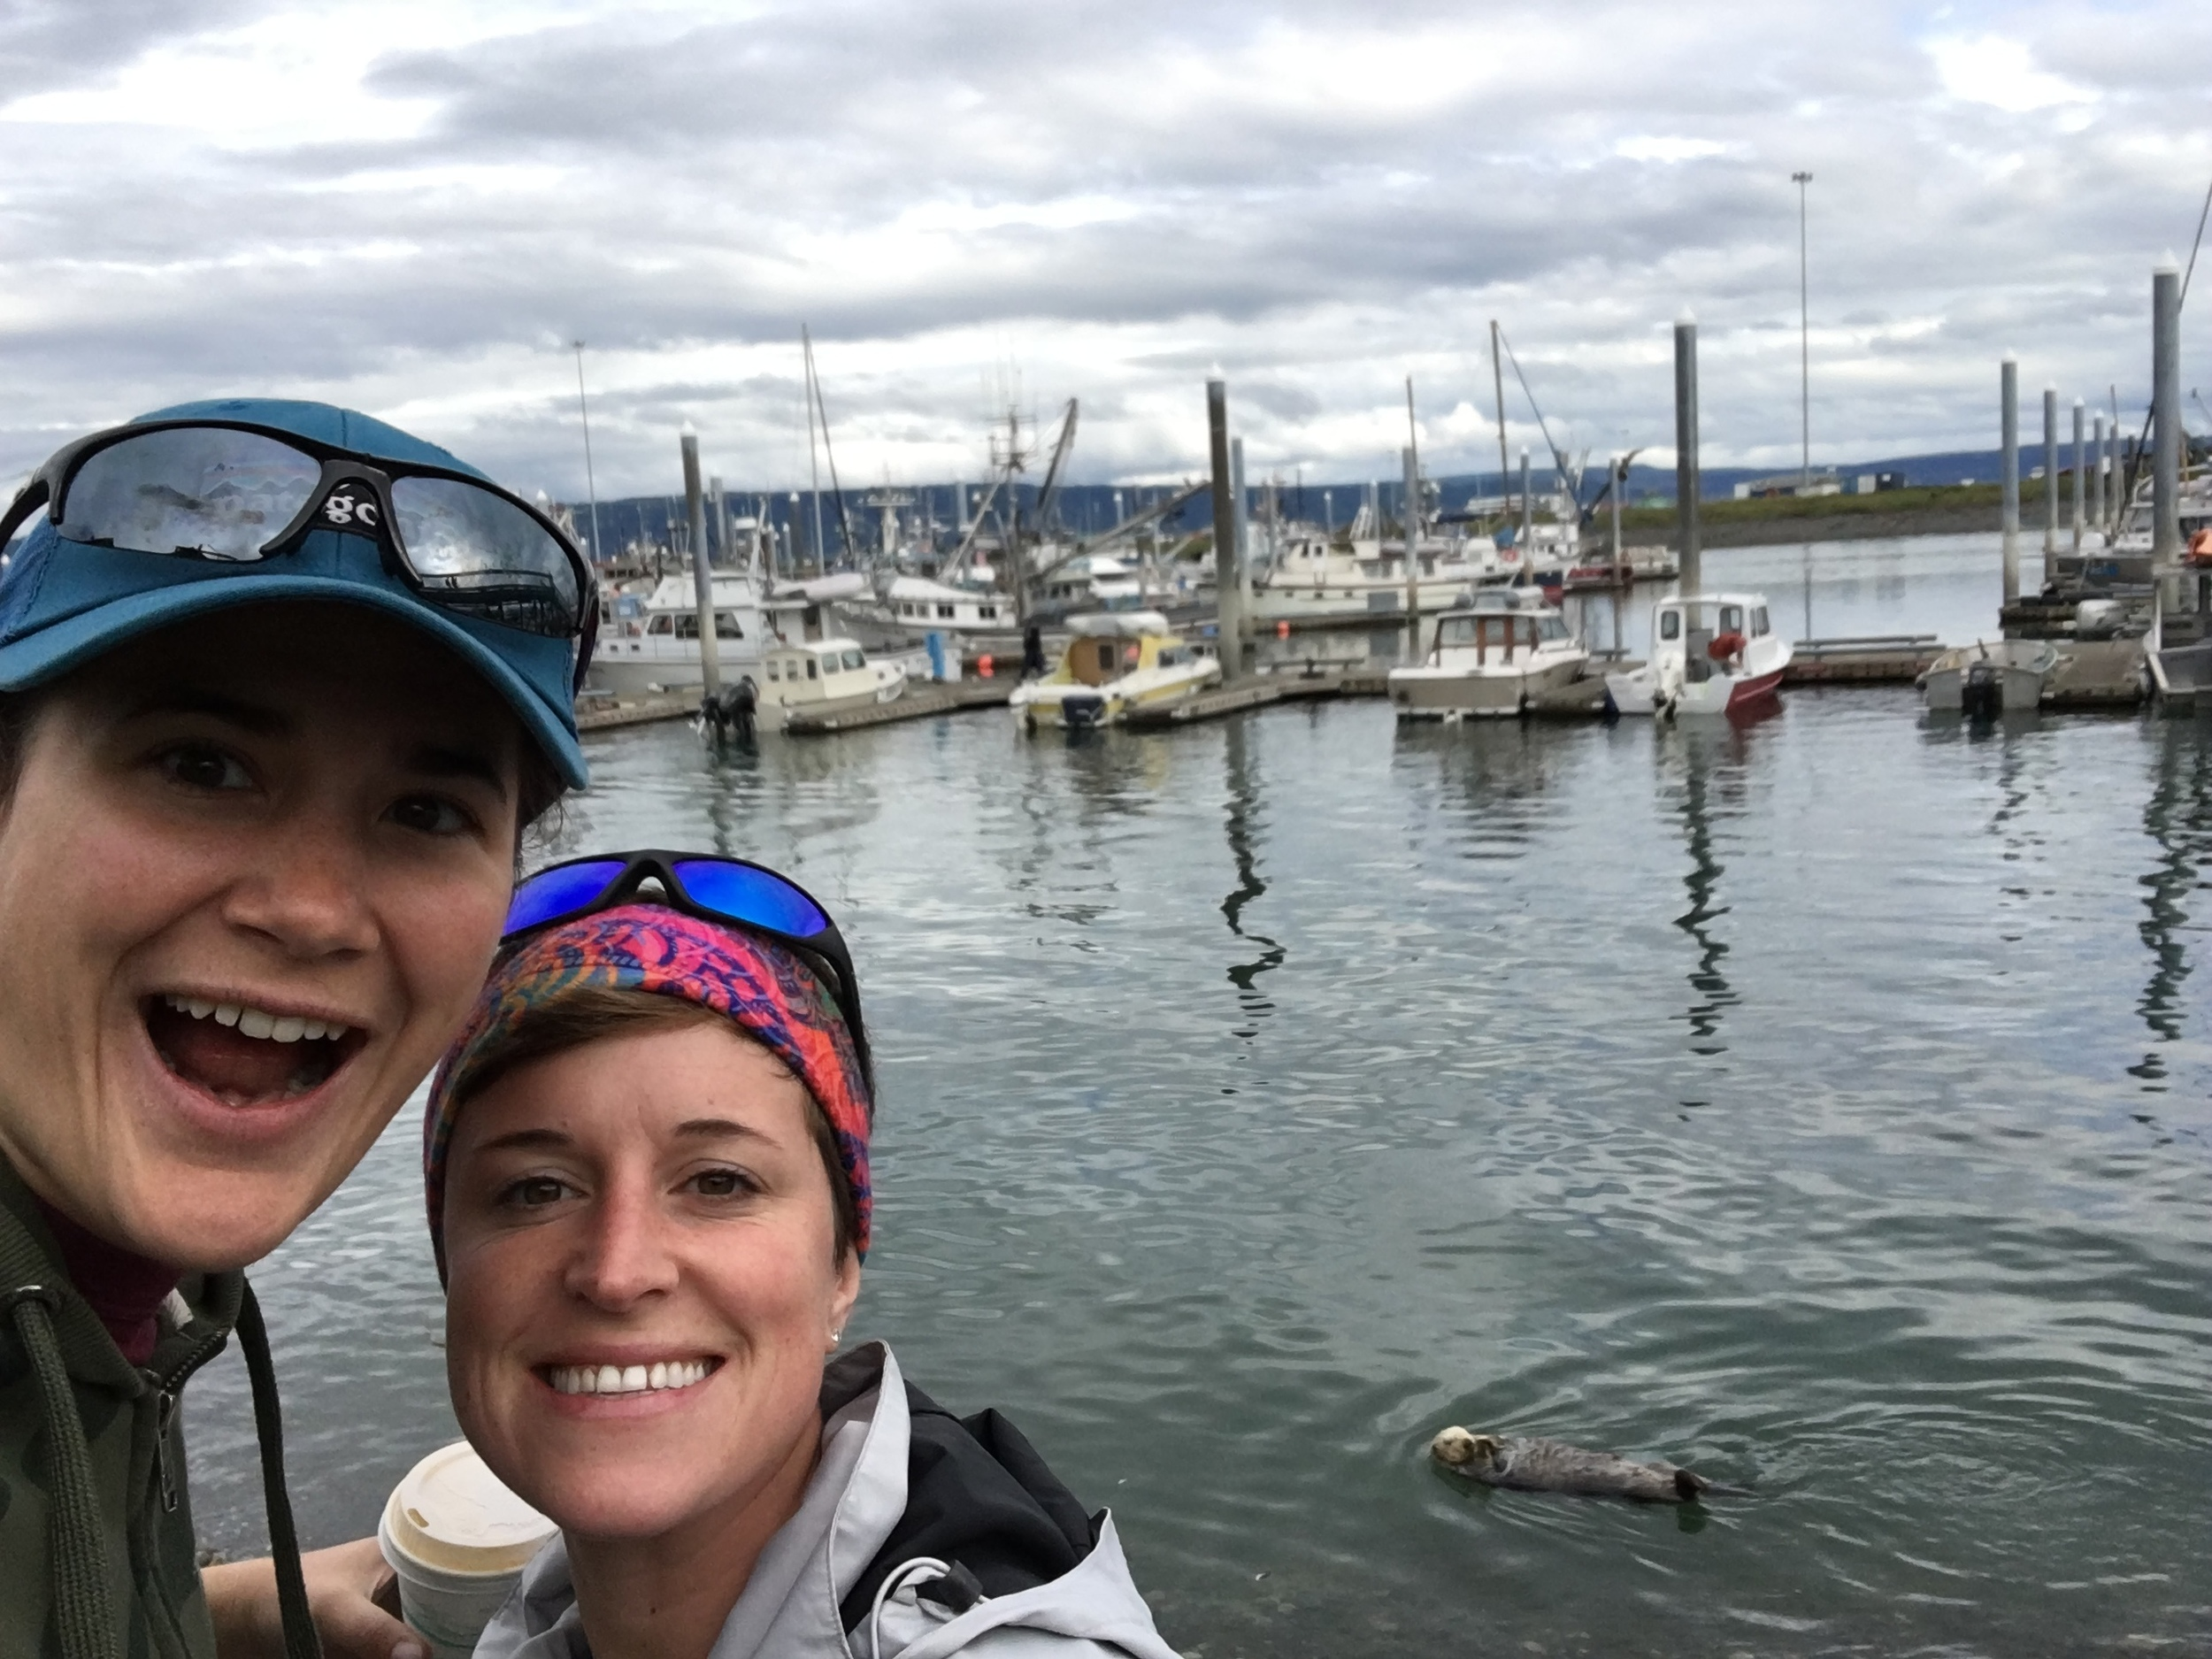 Stoked for sea otters selfie! Haha...